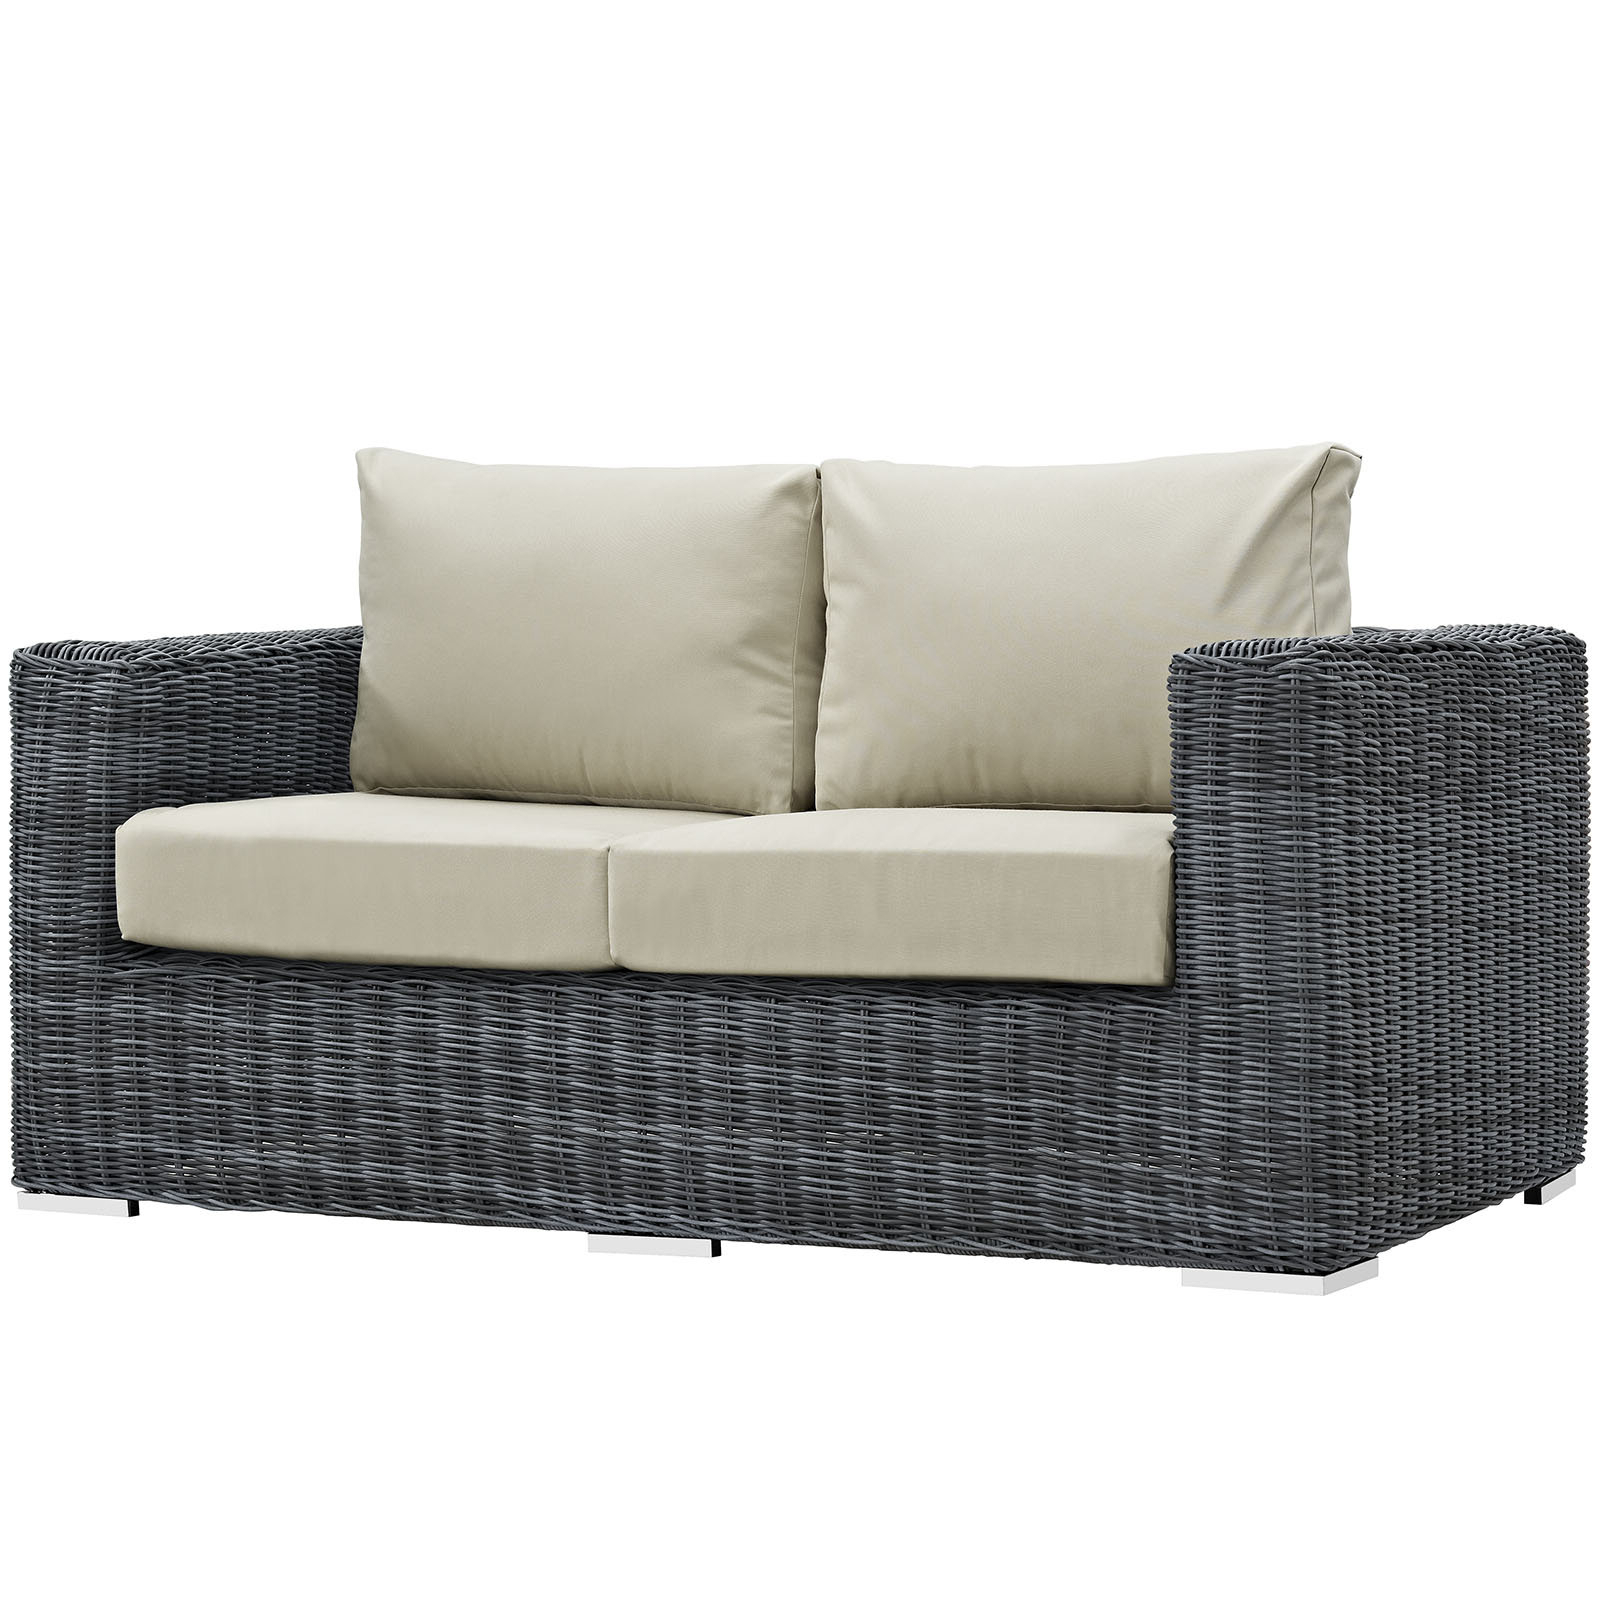 Favorite Keiran Loveseat With Cushions Intended For Keiran Daybeds With Cushions (View 13 of 20)